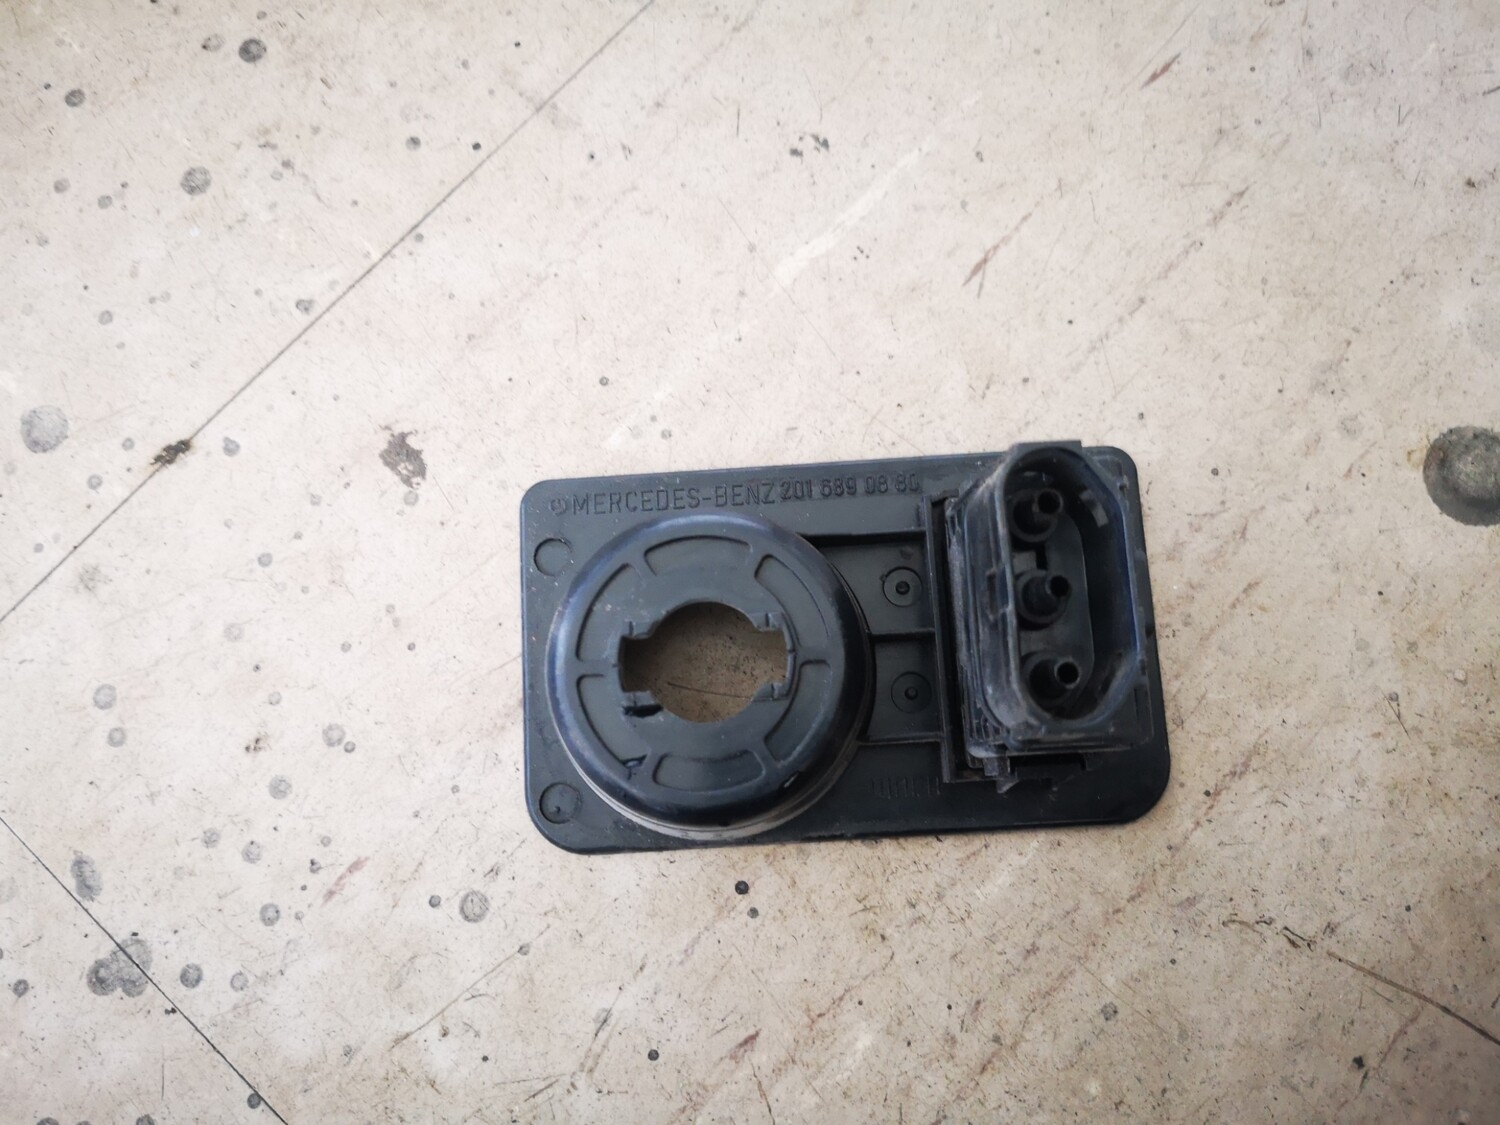 Mercedes-Benz Light Switch Cover (W201)